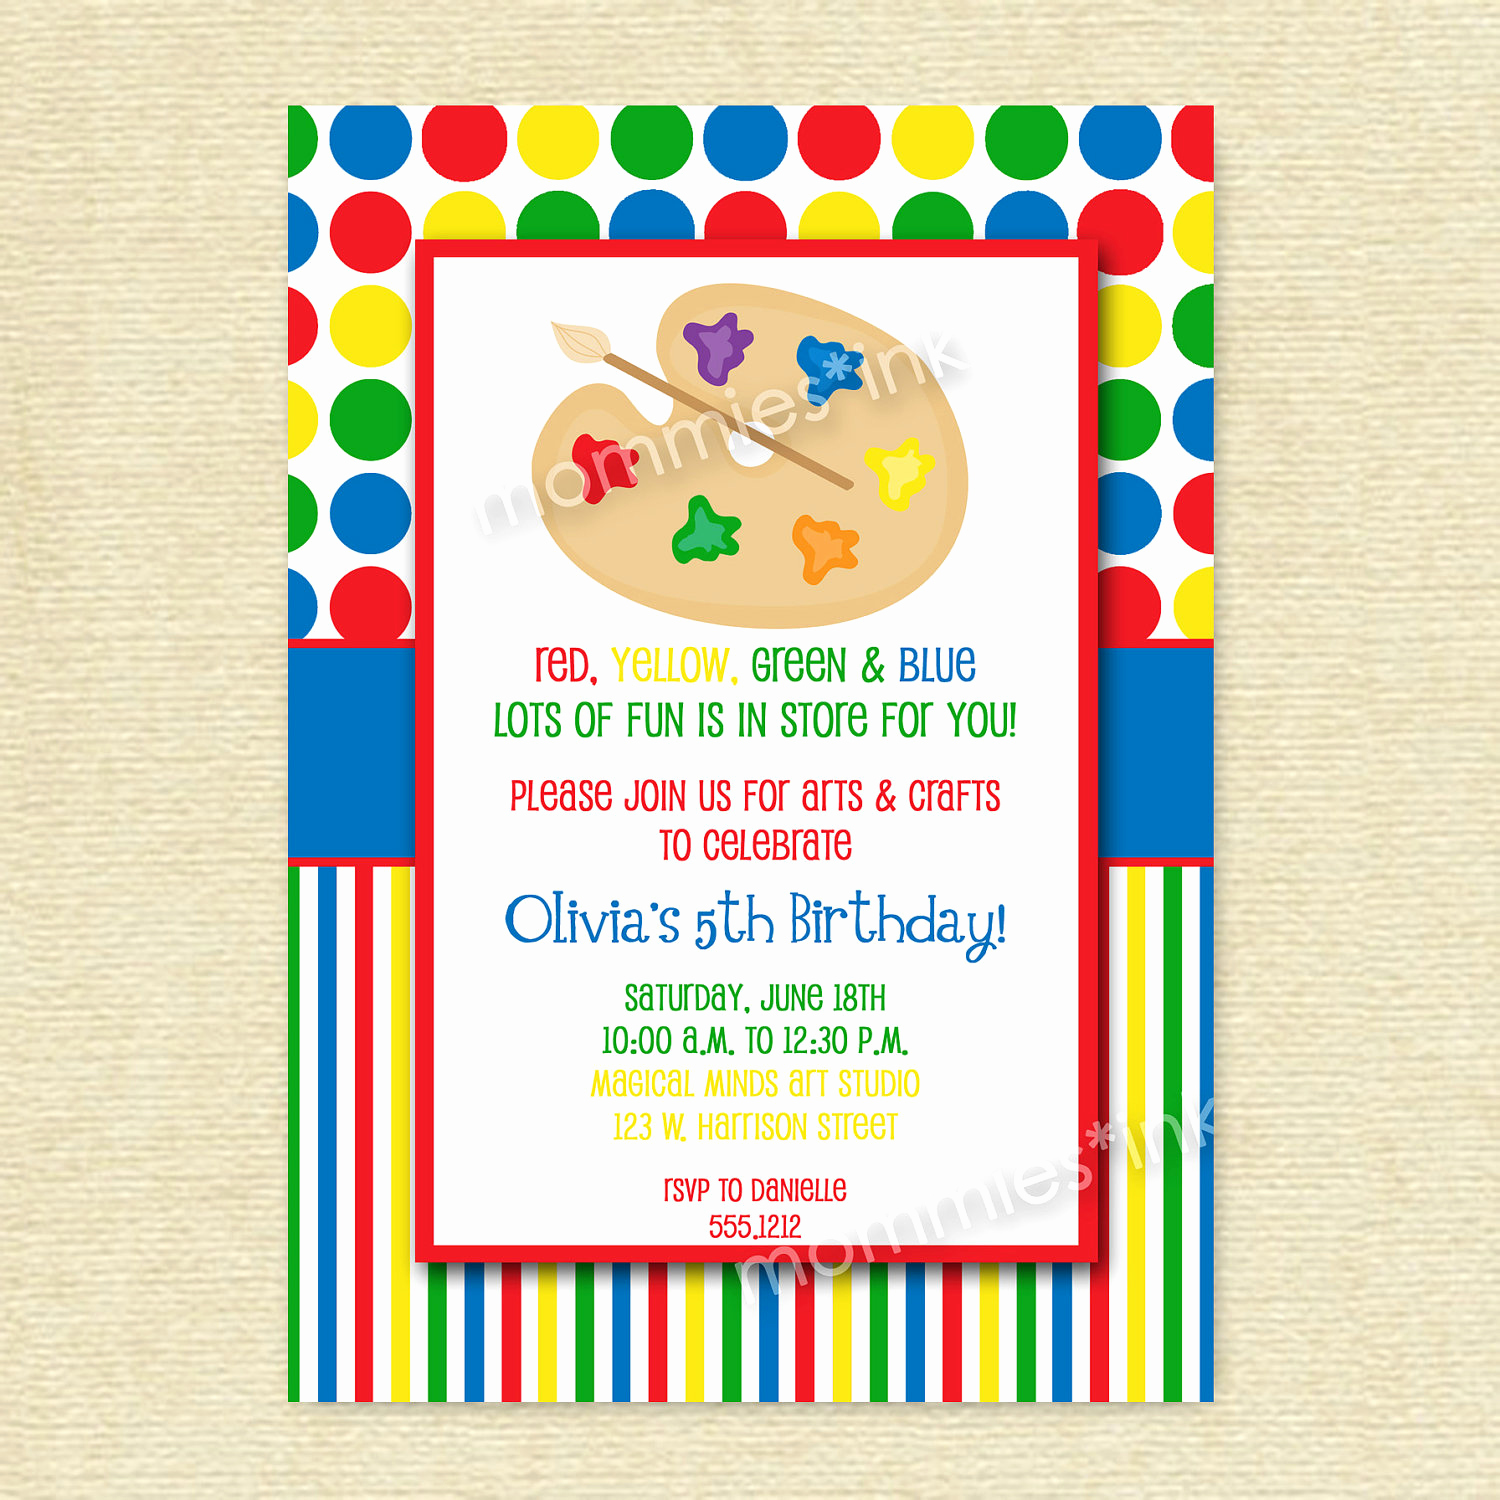 Painting Party Invitation Template Inspirational Arts and Crafts Birthday Party Invitations